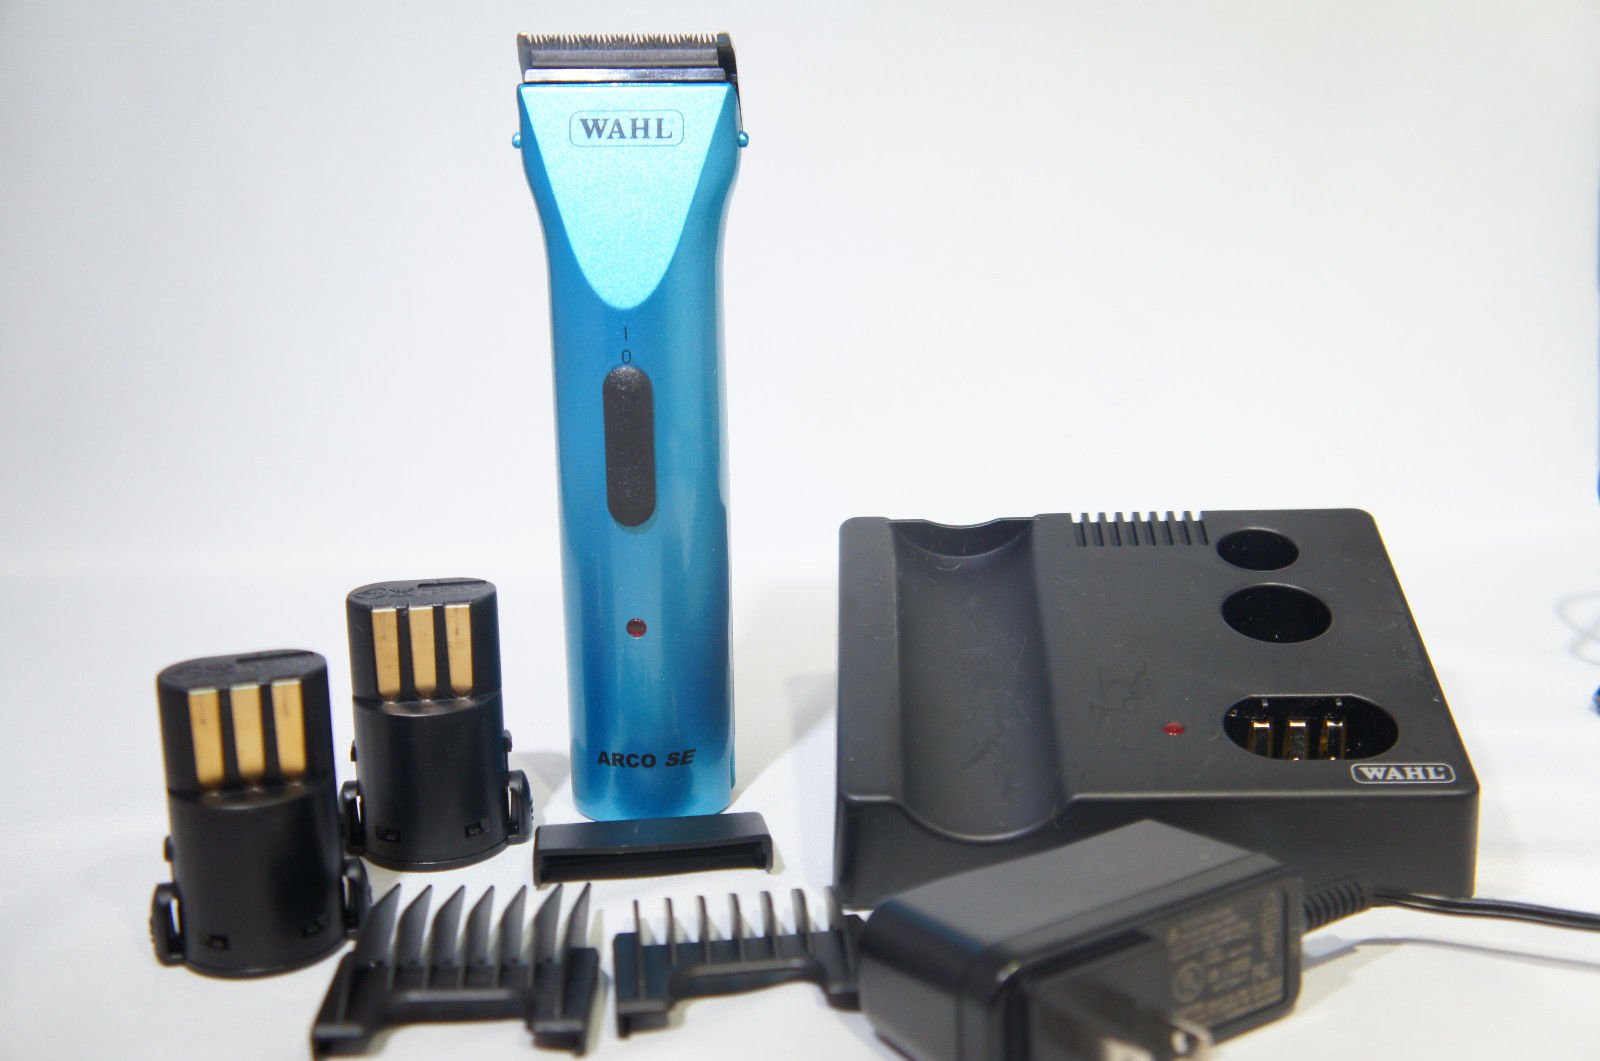 Wahl 8786-1101 Professional Animal ARC, Teal (Like New)